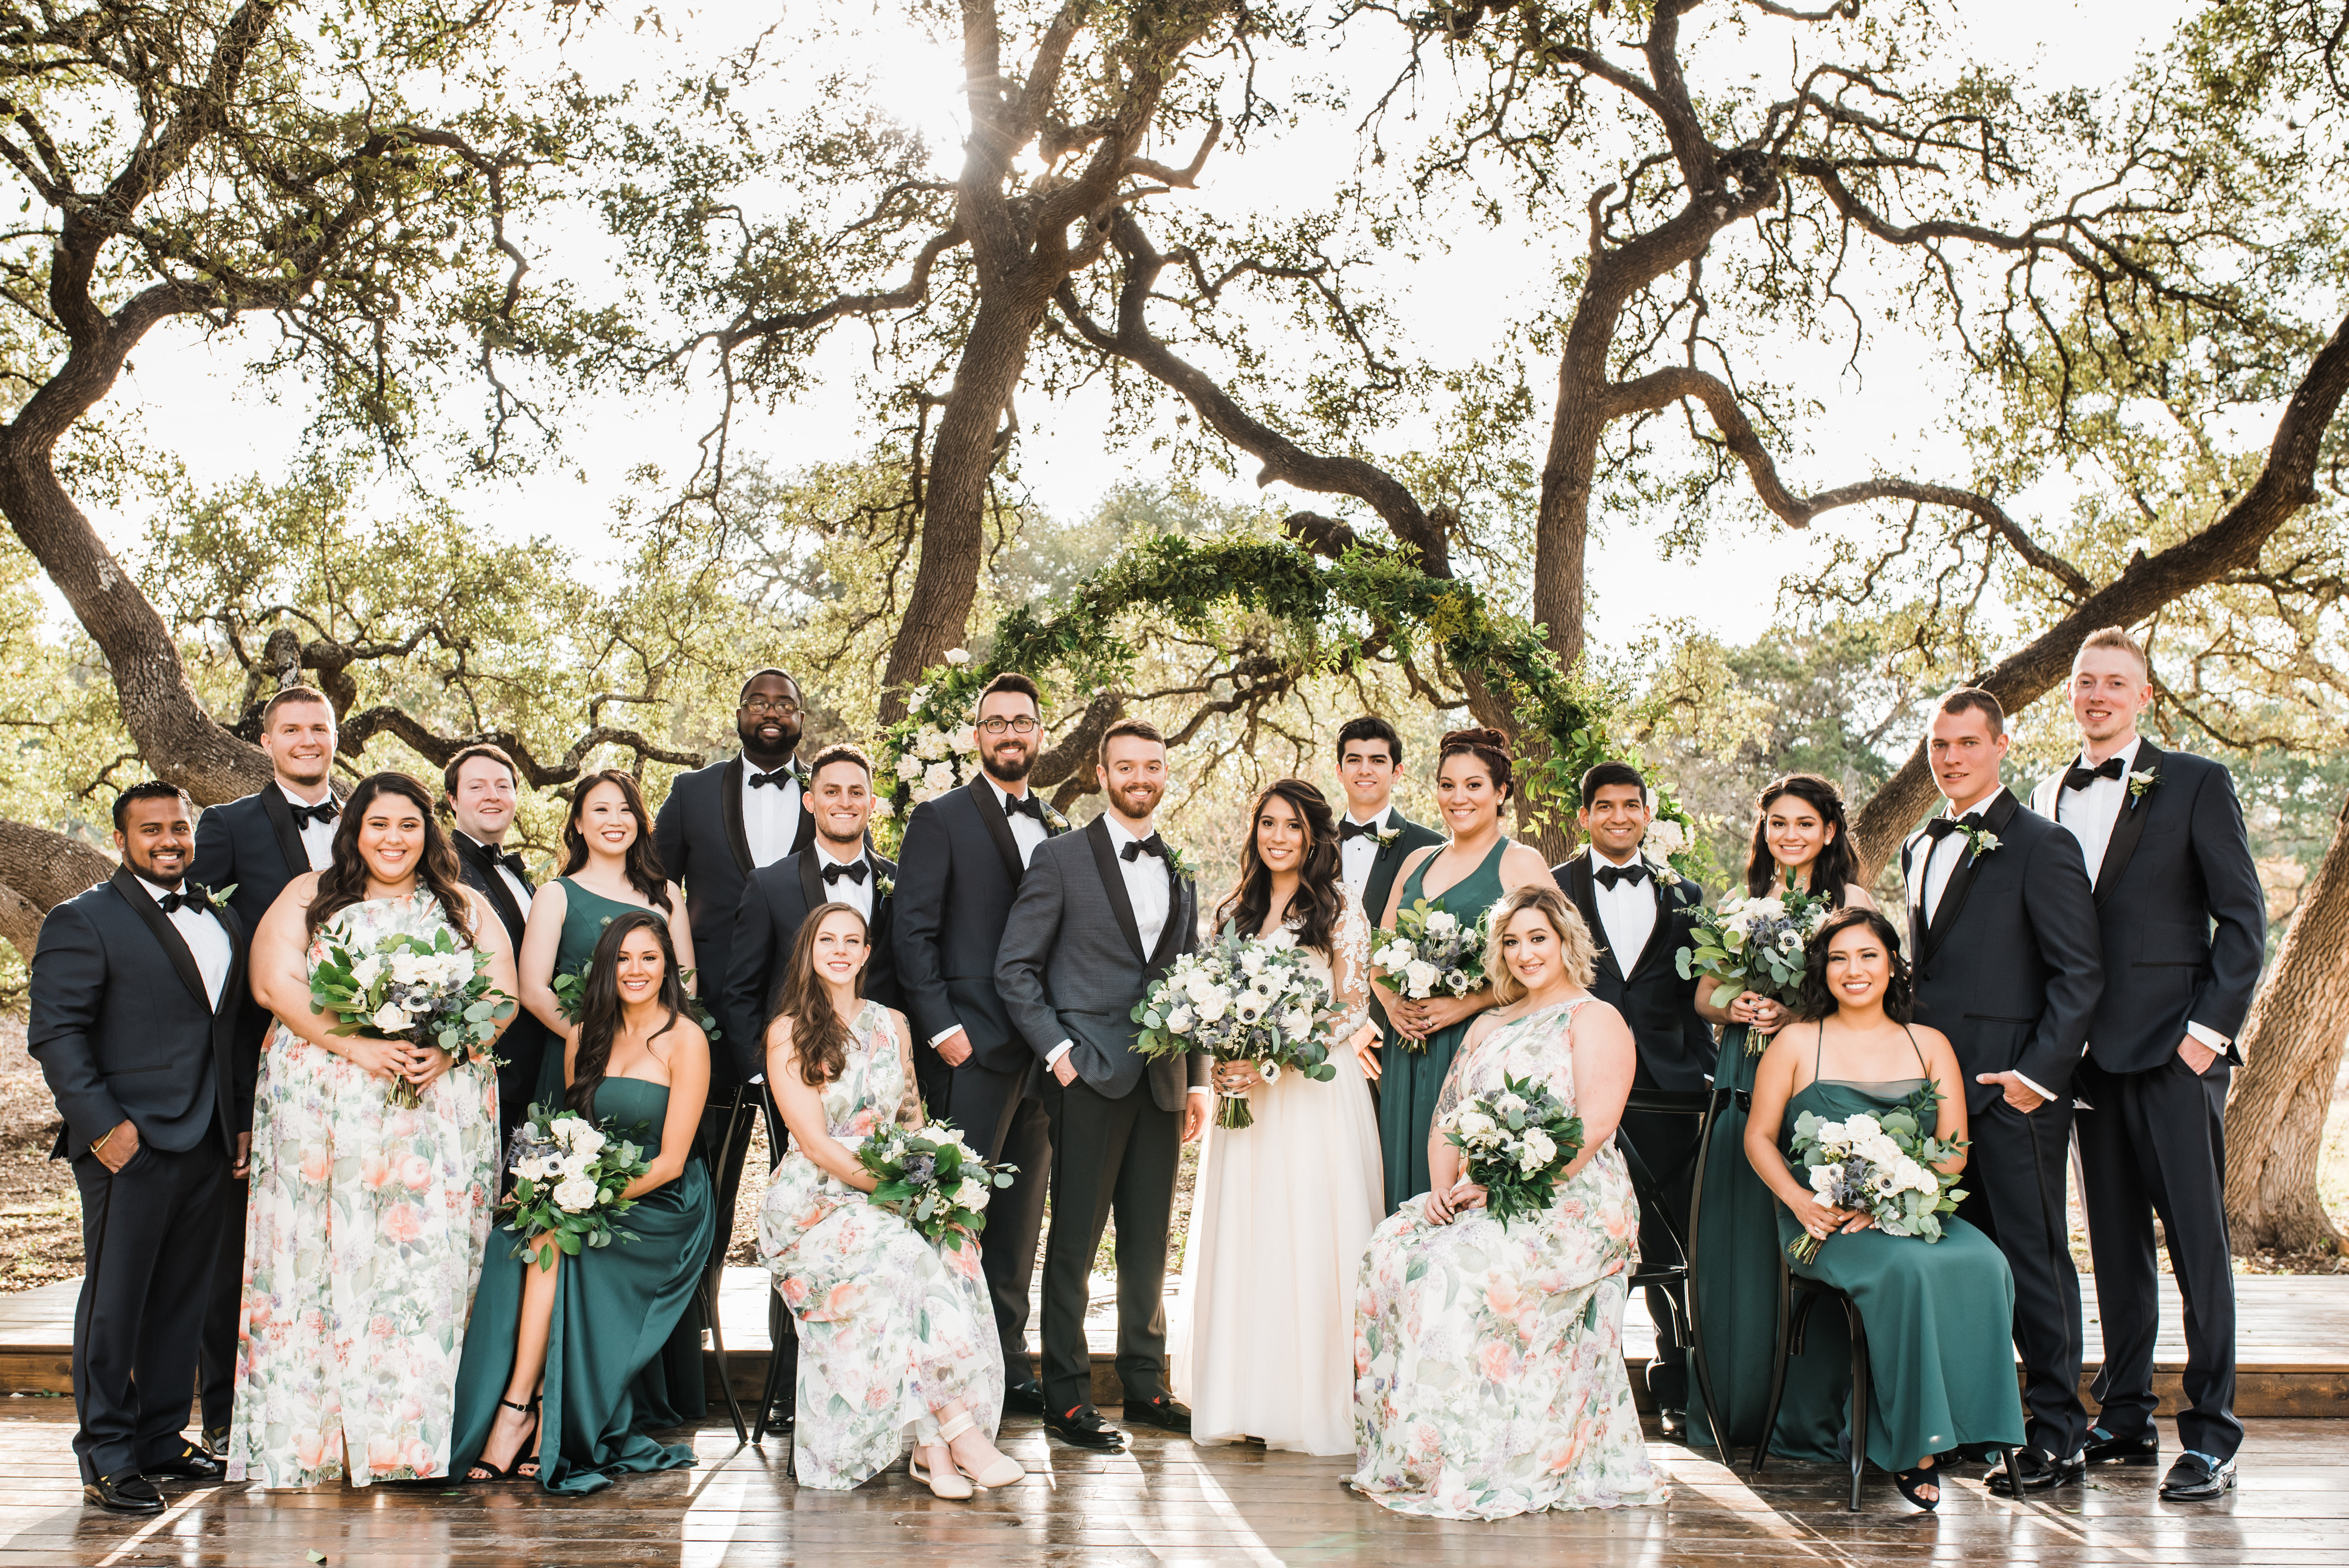 bridal party with green and floral bridesmaids dresses, blush wedding gown